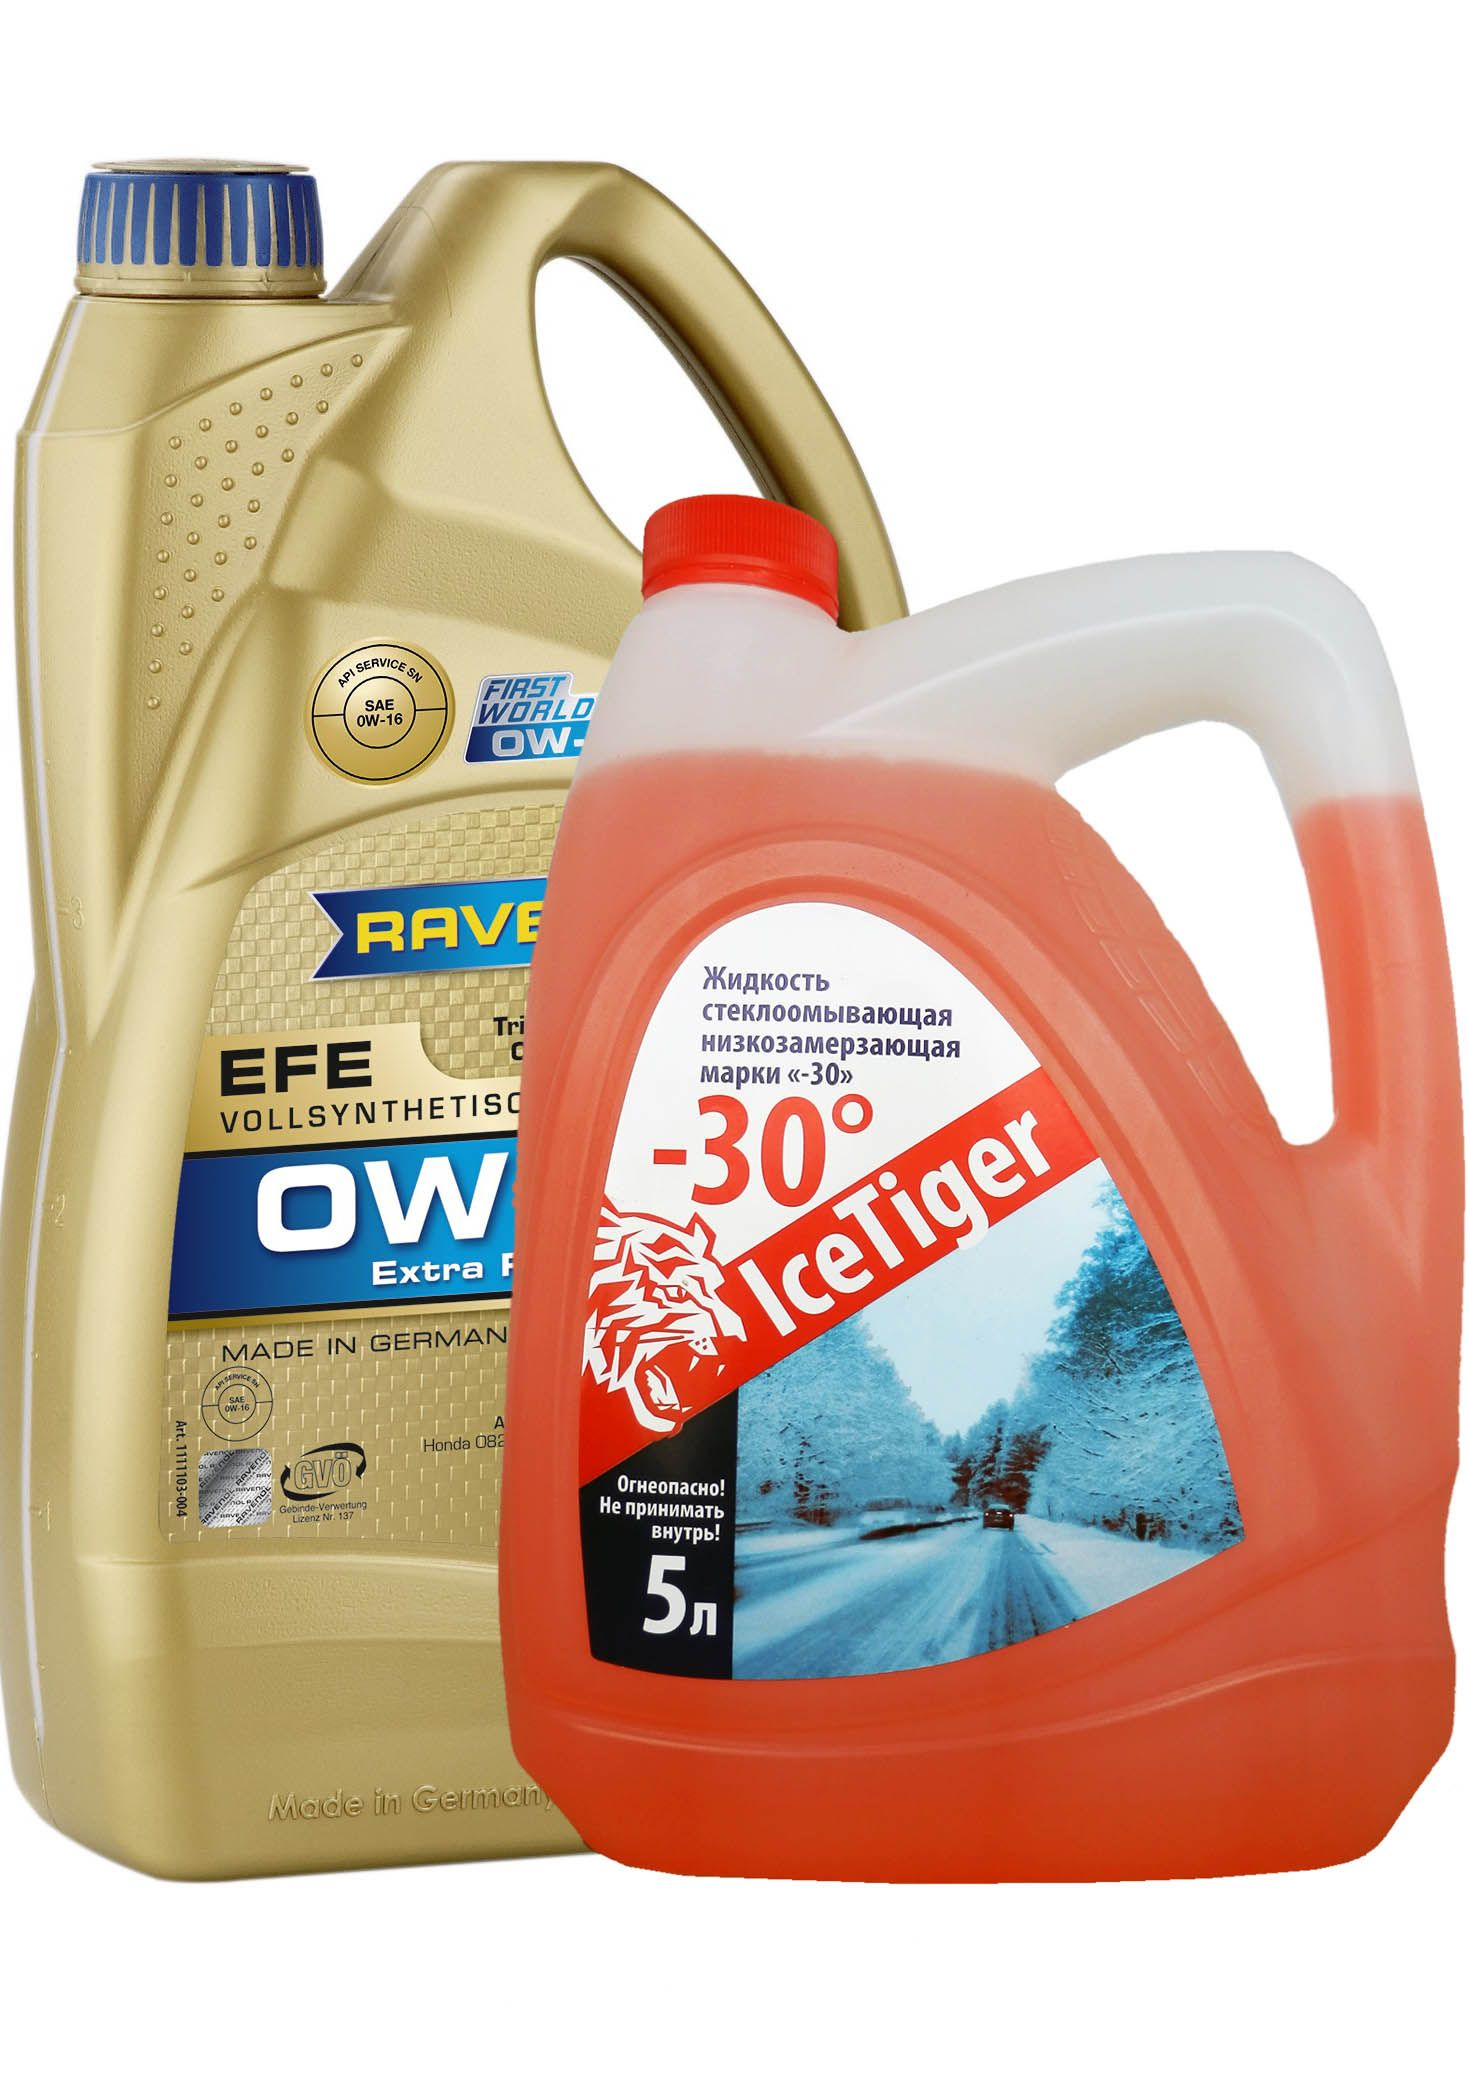 Набор RAVENOL EFE Extra Fuel Economy SAE 0W-16 ( 4л) new + Ice Tiger -30 (Премиум) (5л) от Ravta